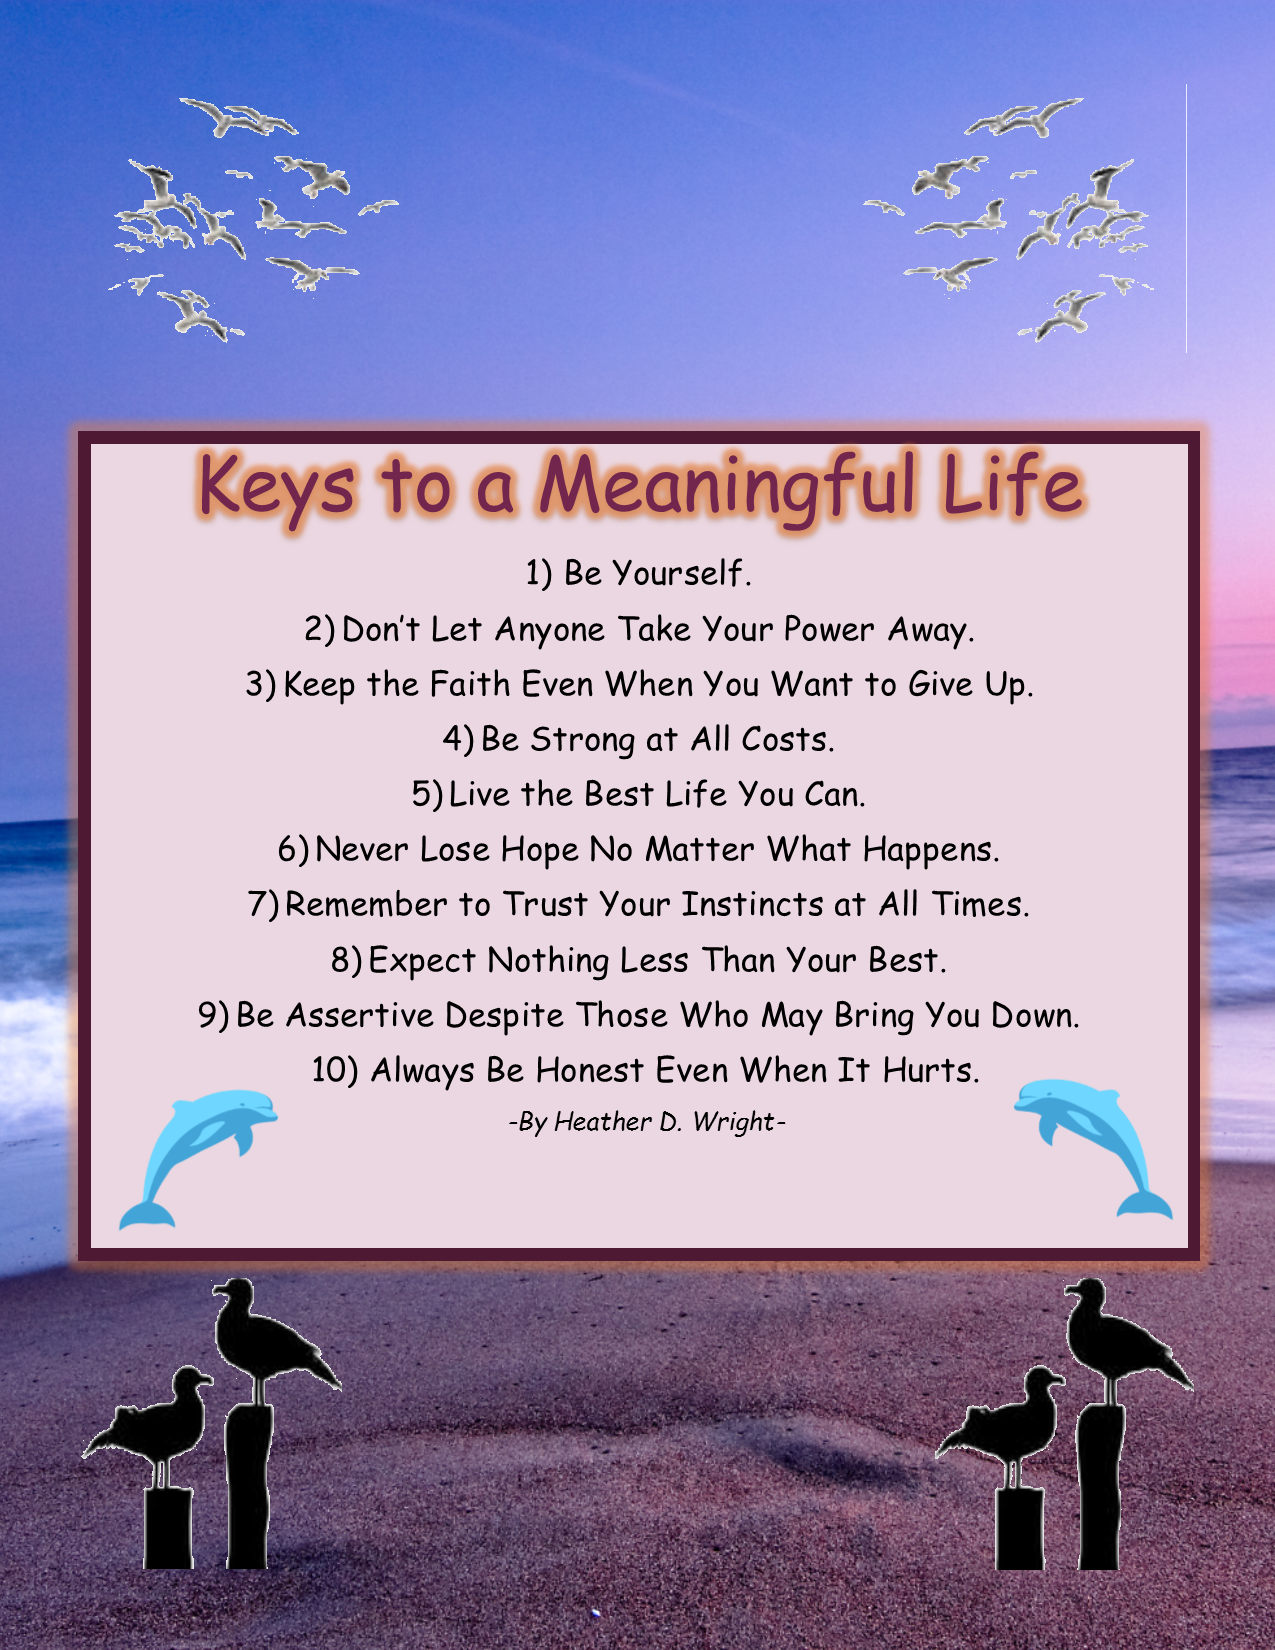 Keys to a Meaningful Life - Printable Inspirational Art Download